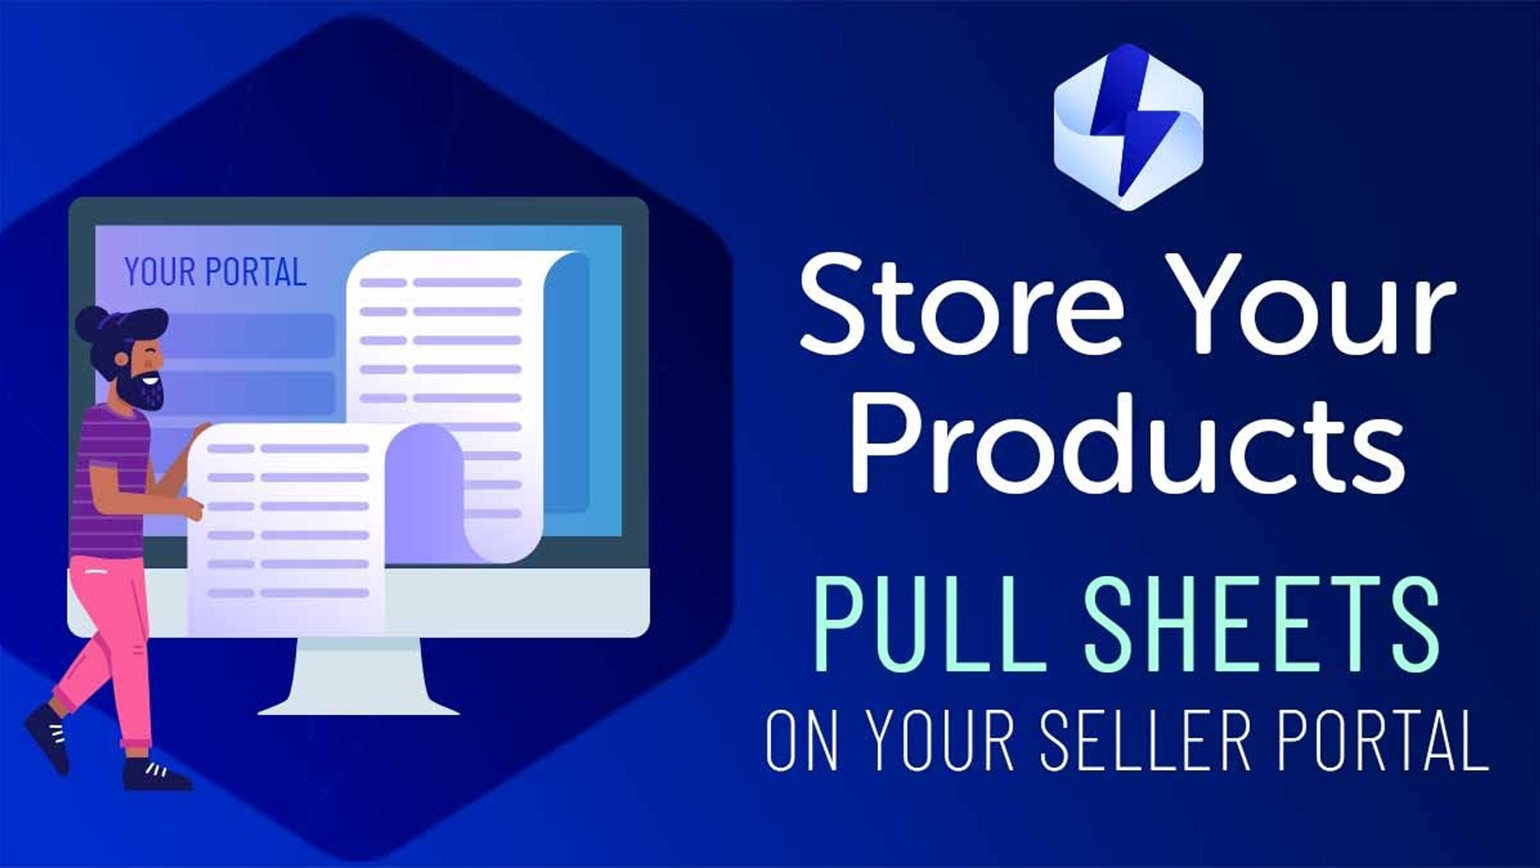 Access the Store Your Products (SYP) Pull Sheet Today